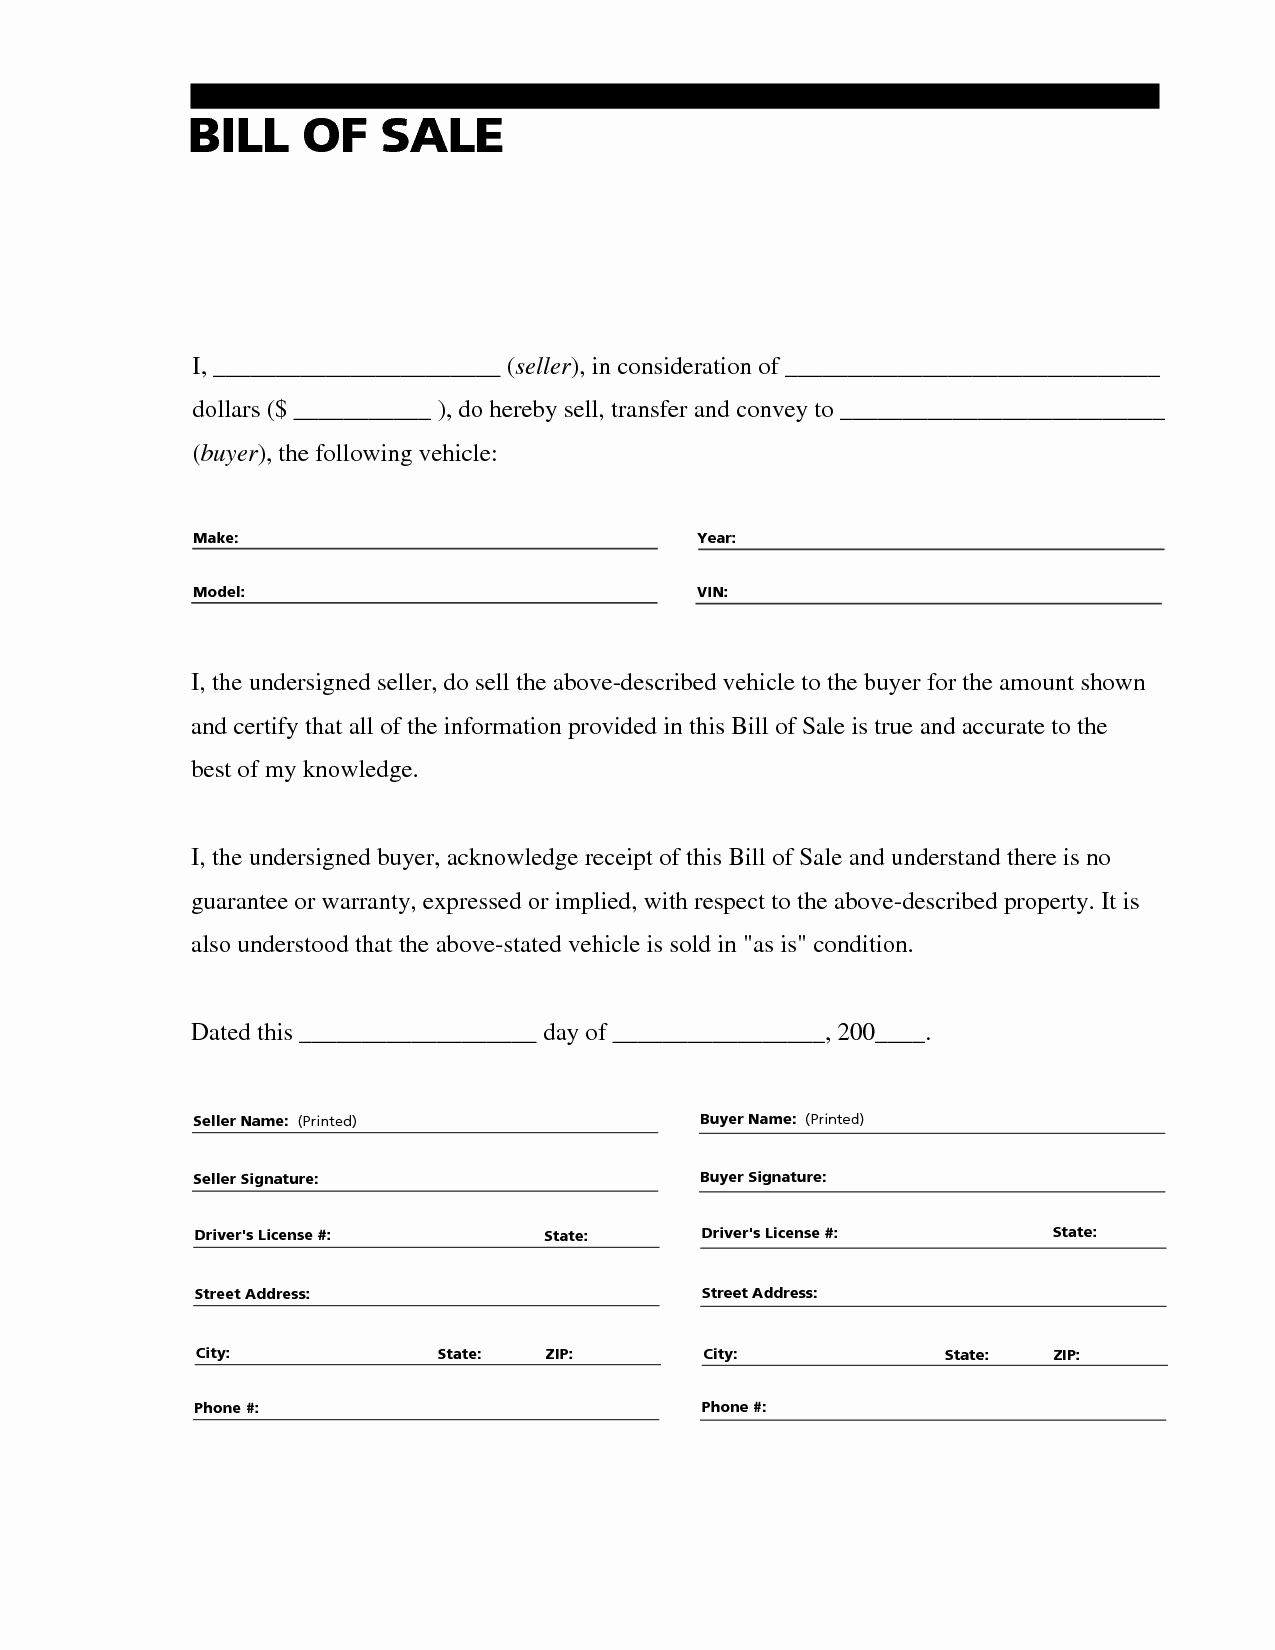 Form Of Bill Of Sale Elegant Free Printable Auto Bill Of Sale form Generic